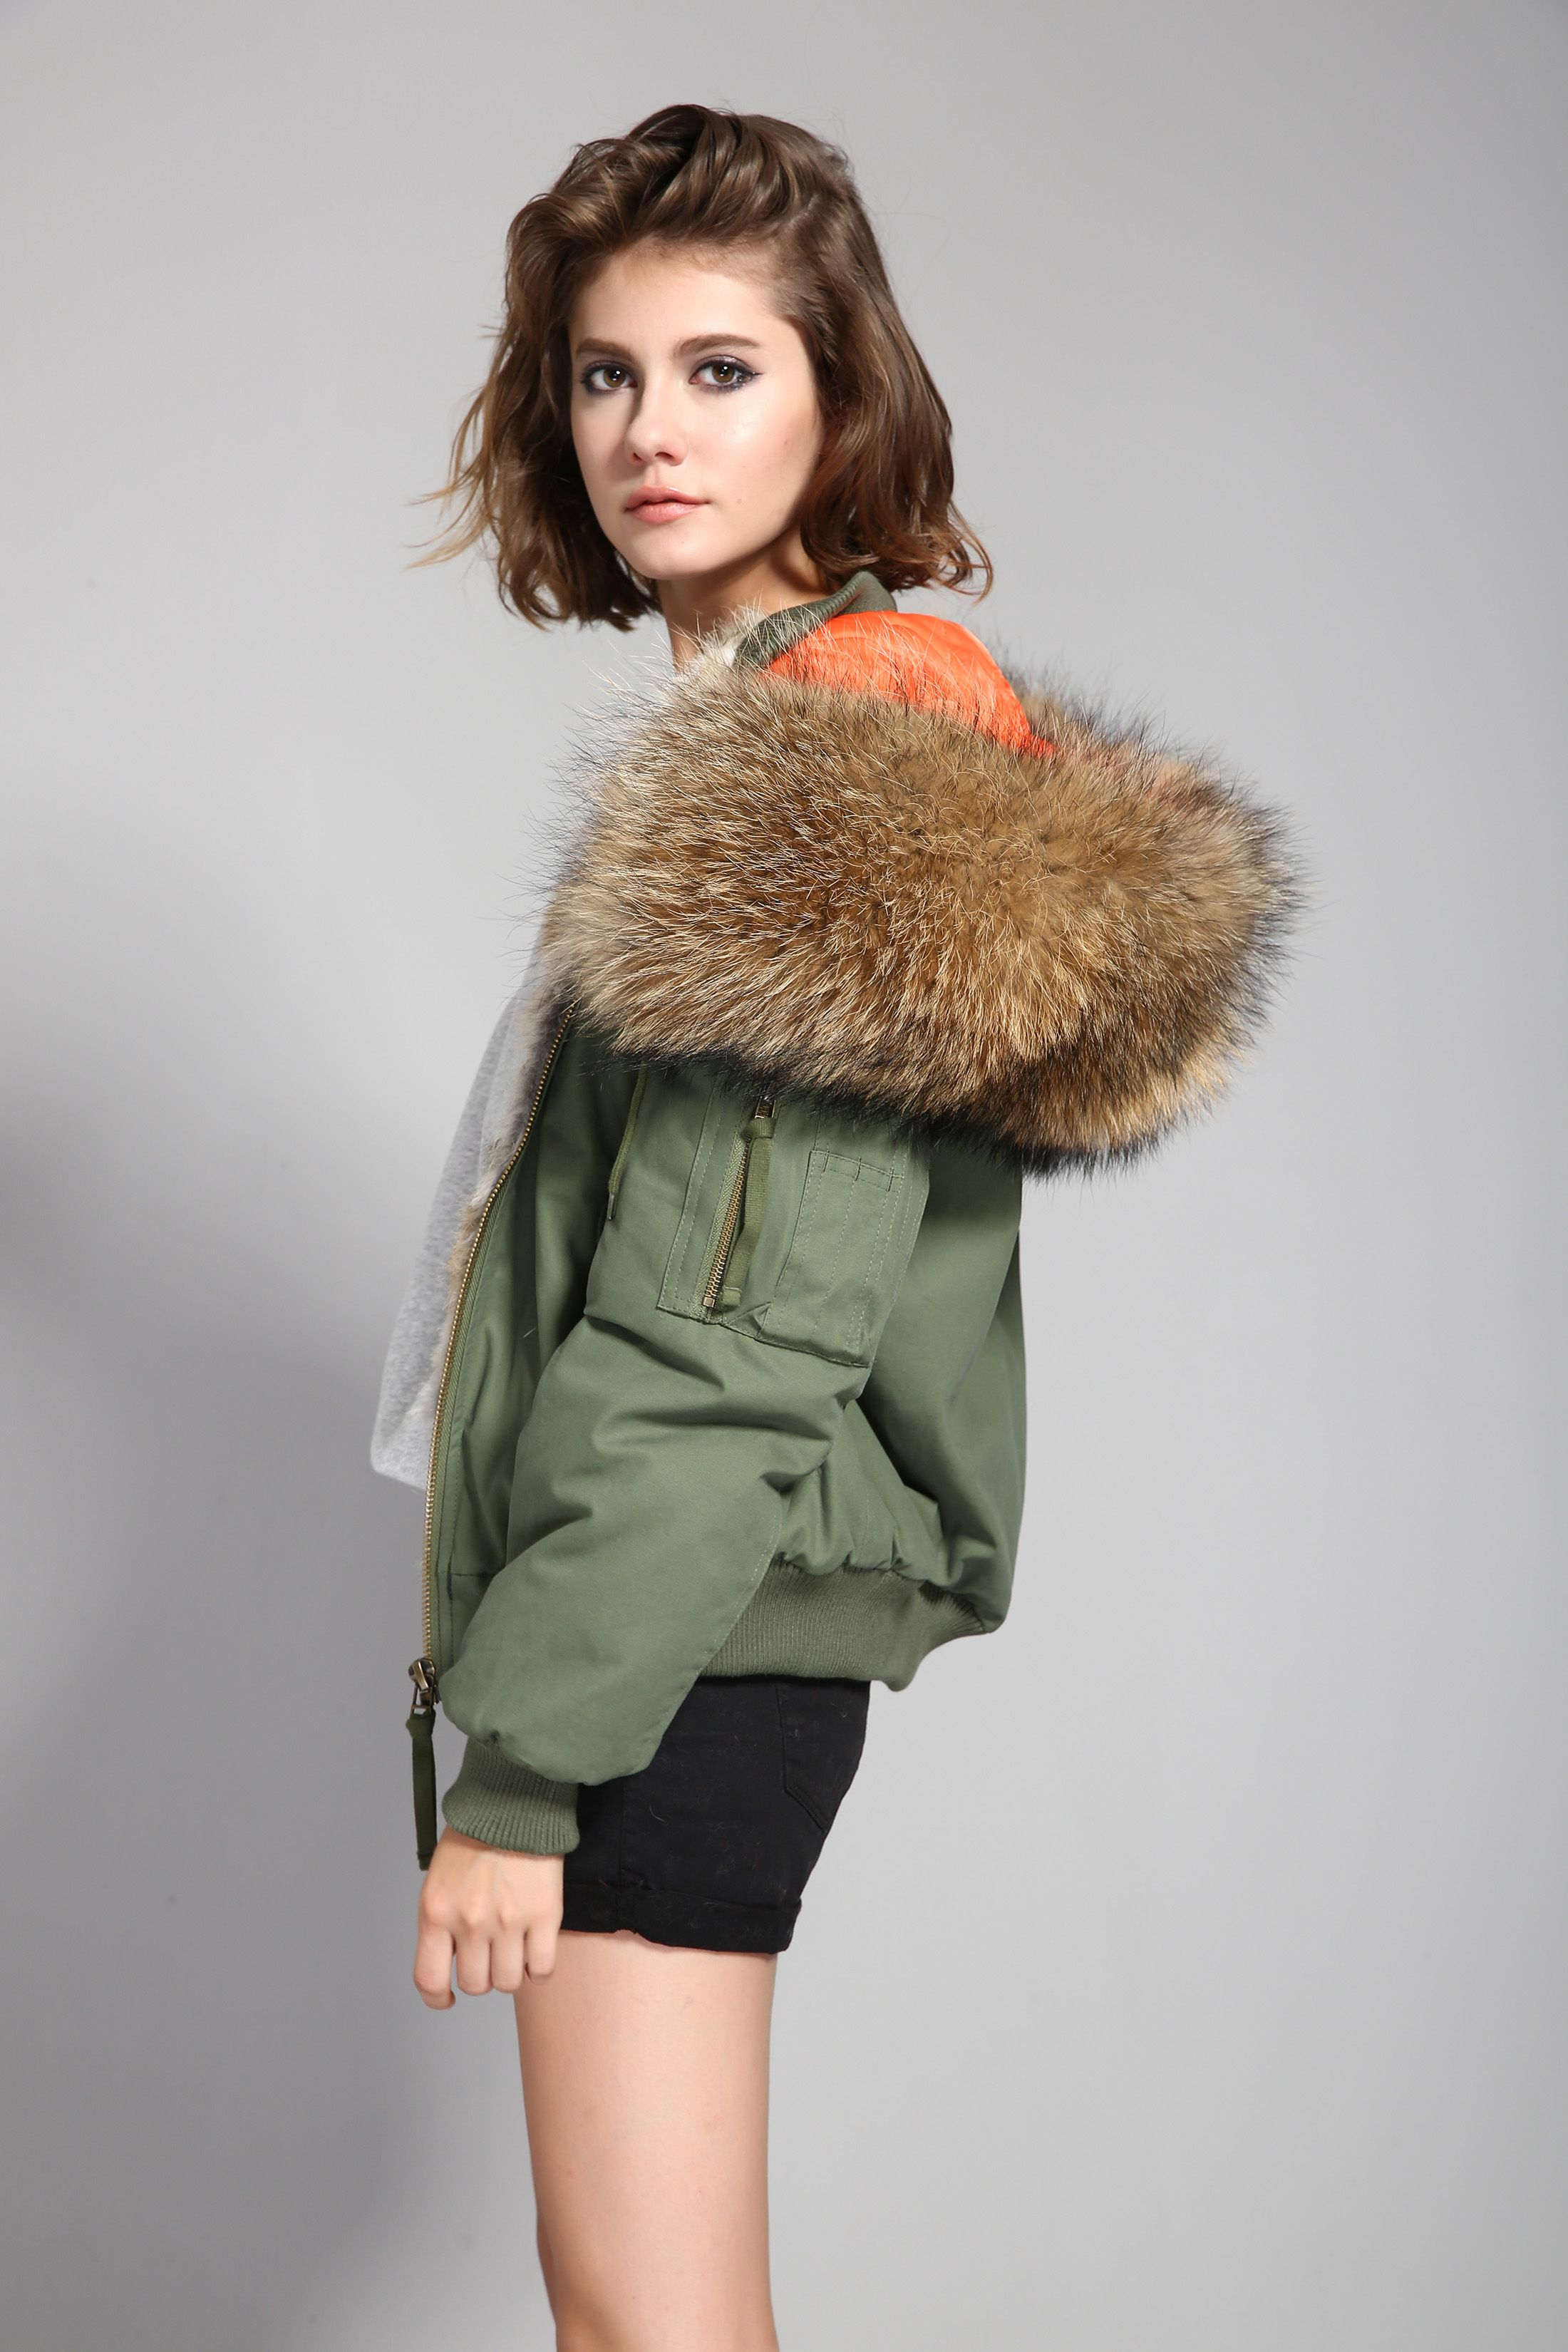 31e2da1e67a JAZZEVAR new high fashion street woman winter jacket female worm bomber coat  hooded large raccoon fur outerwear rabbit fur liner